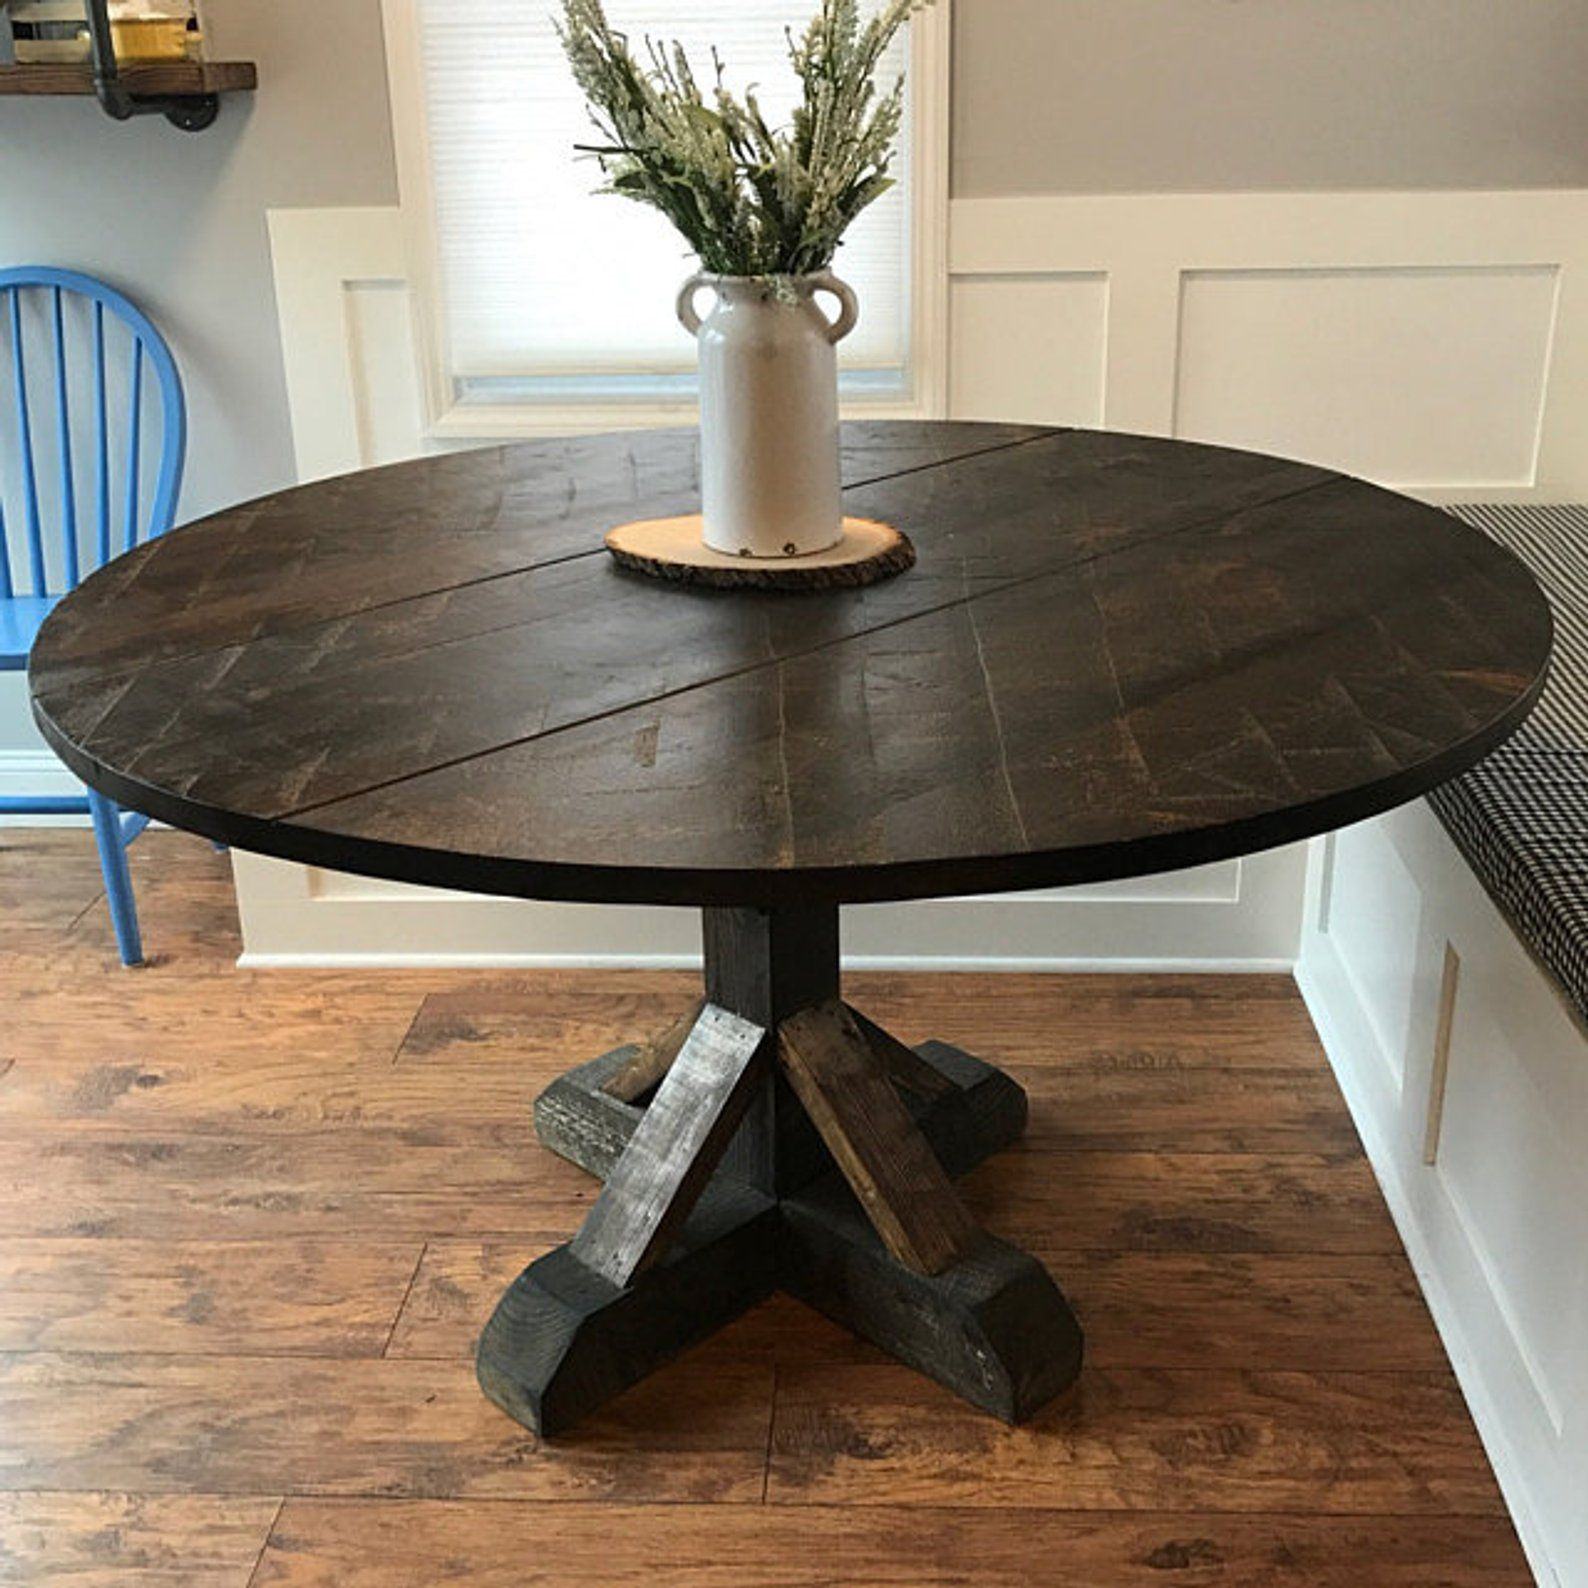 Rustic Round Pedestal Base Table Size Style Example Round Kitchen Table Pedestal Table Base Rustic Country Furniture